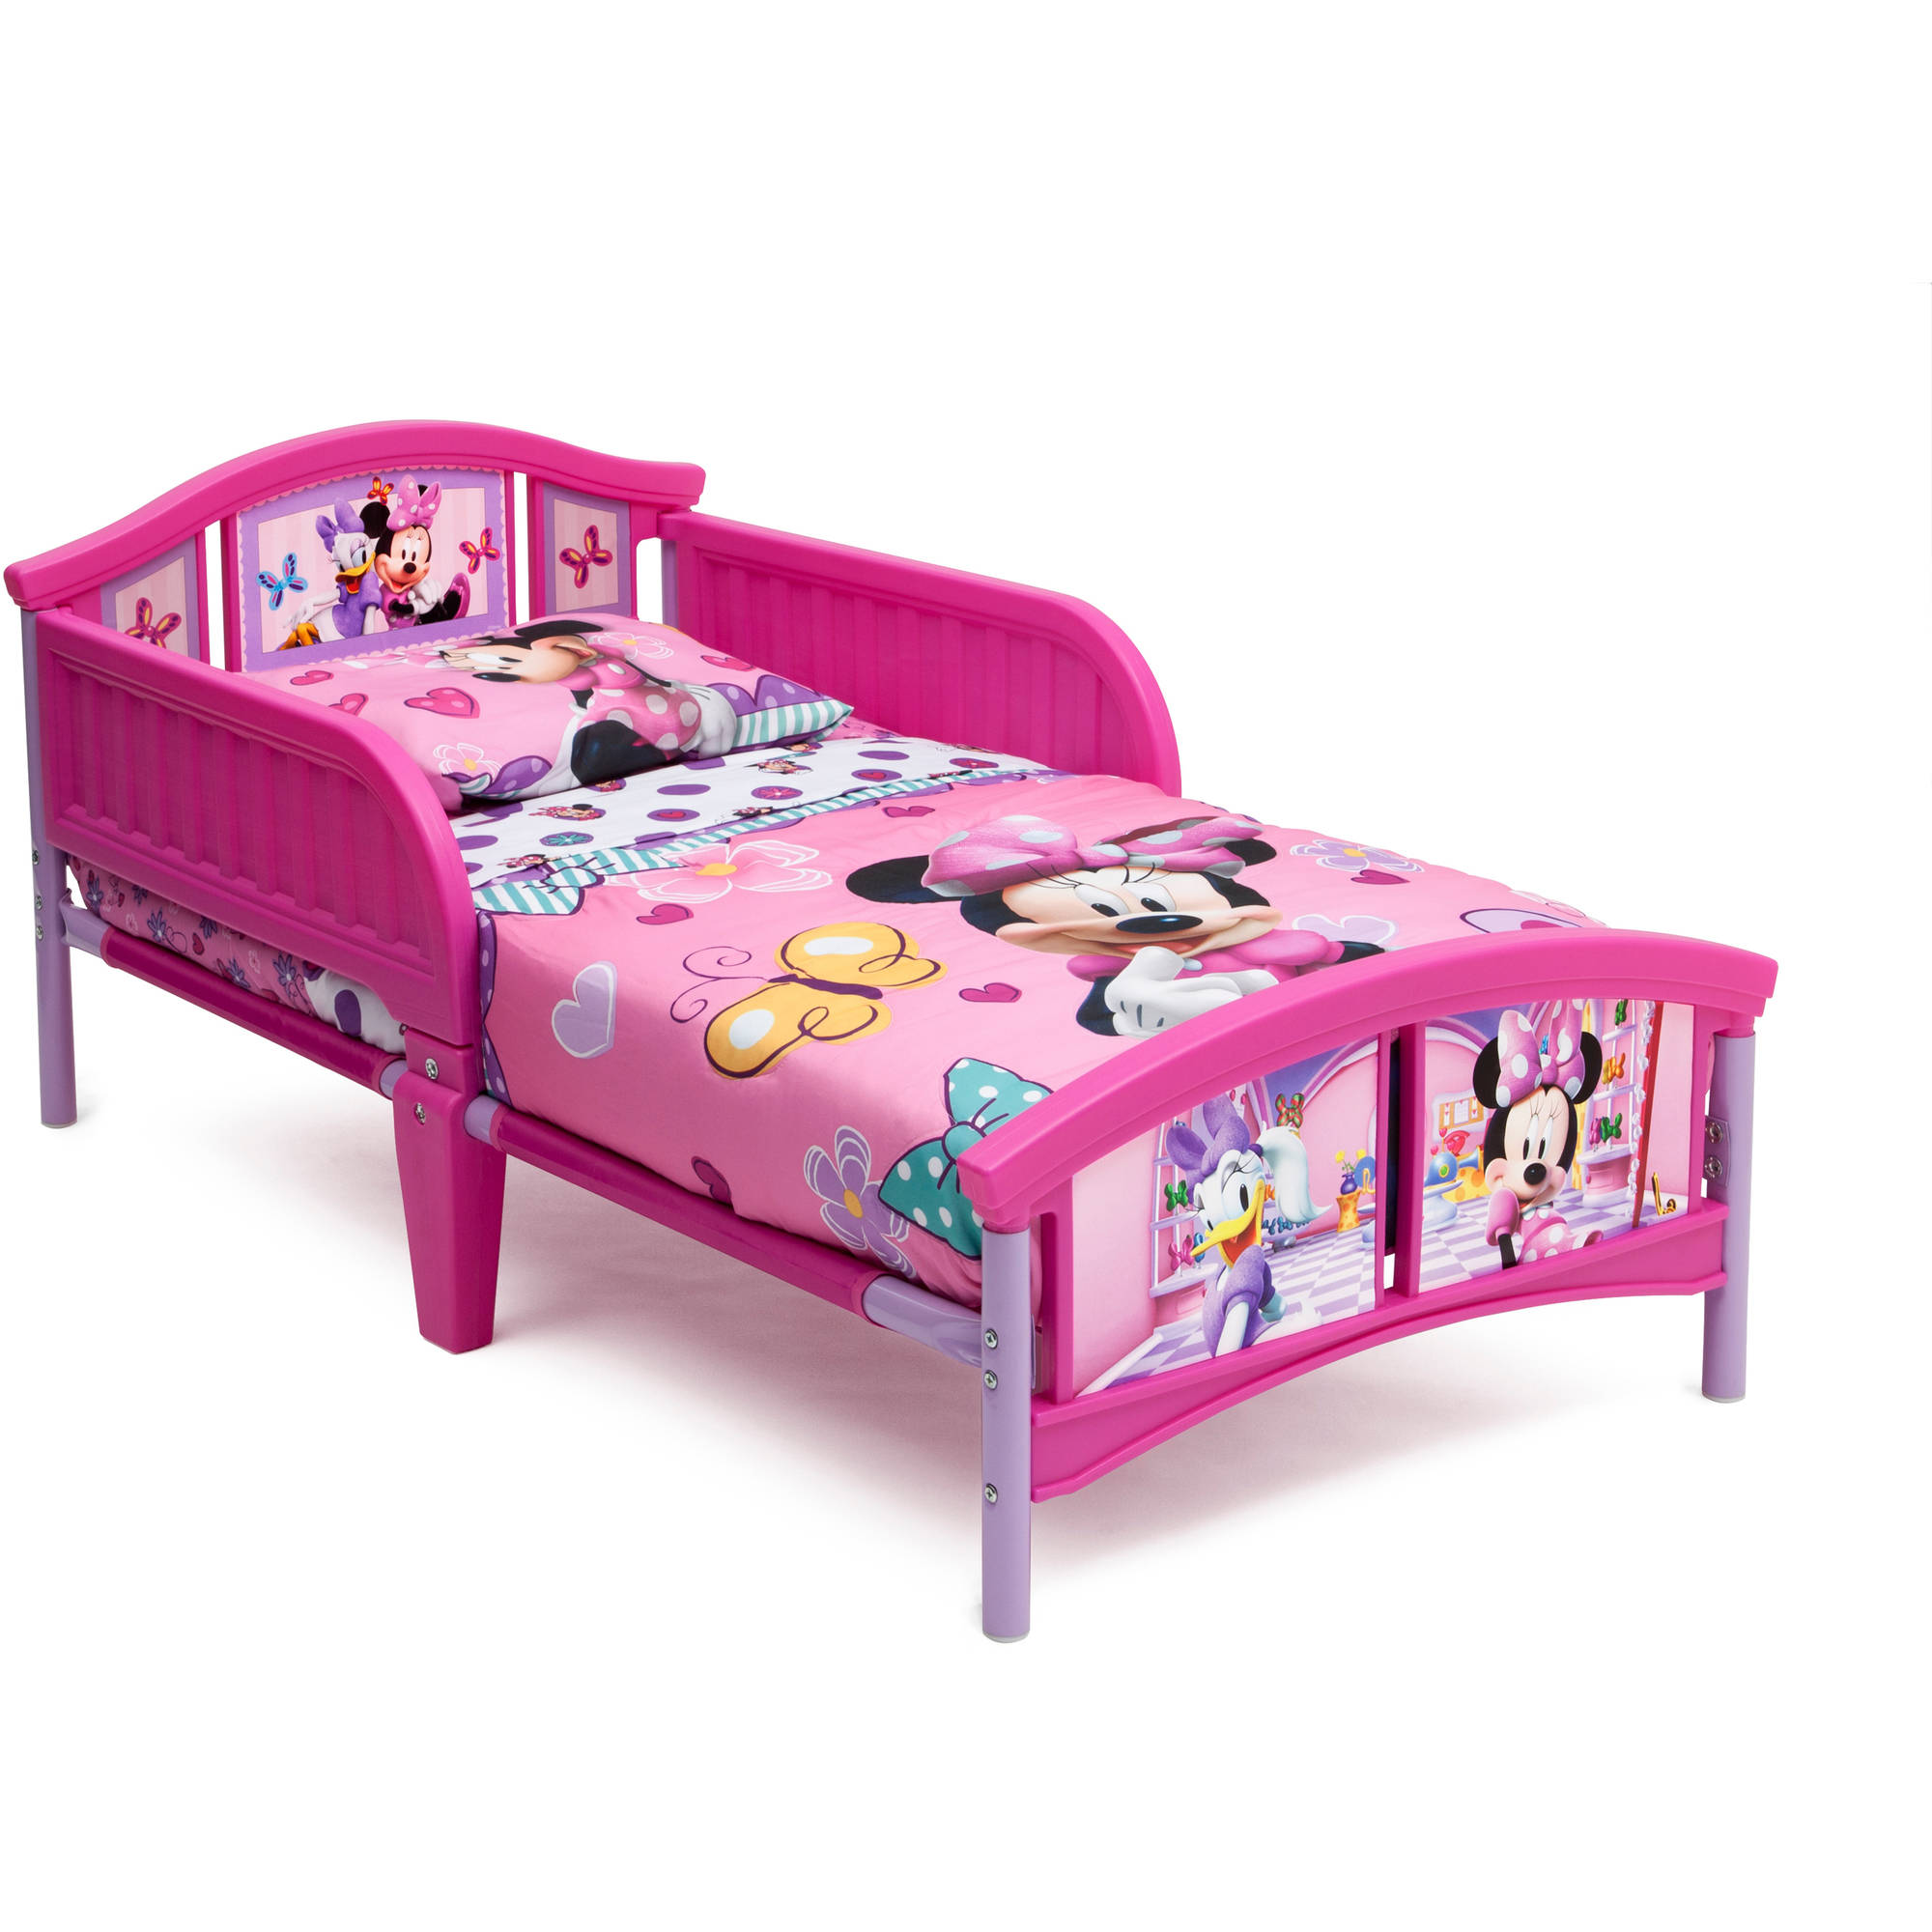 disney minnie mouse plastic toddler bed 691335322488 ebay. Black Bedroom Furniture Sets. Home Design Ideas